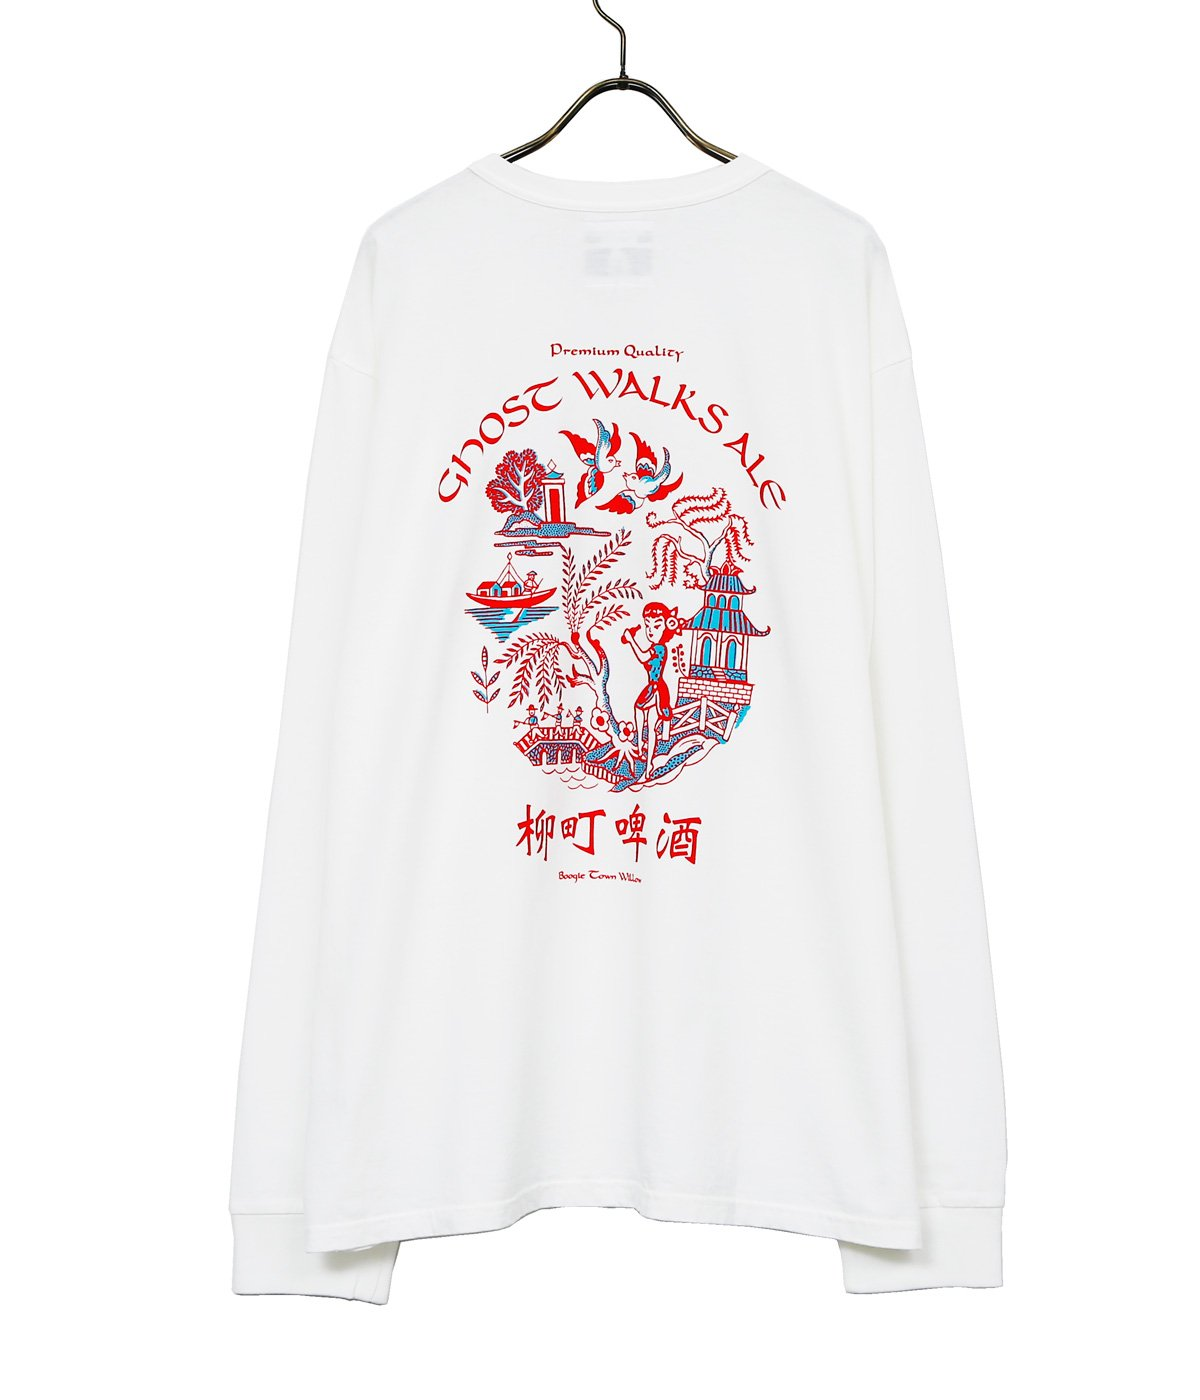 GHOST WALKS ALE LS shirt